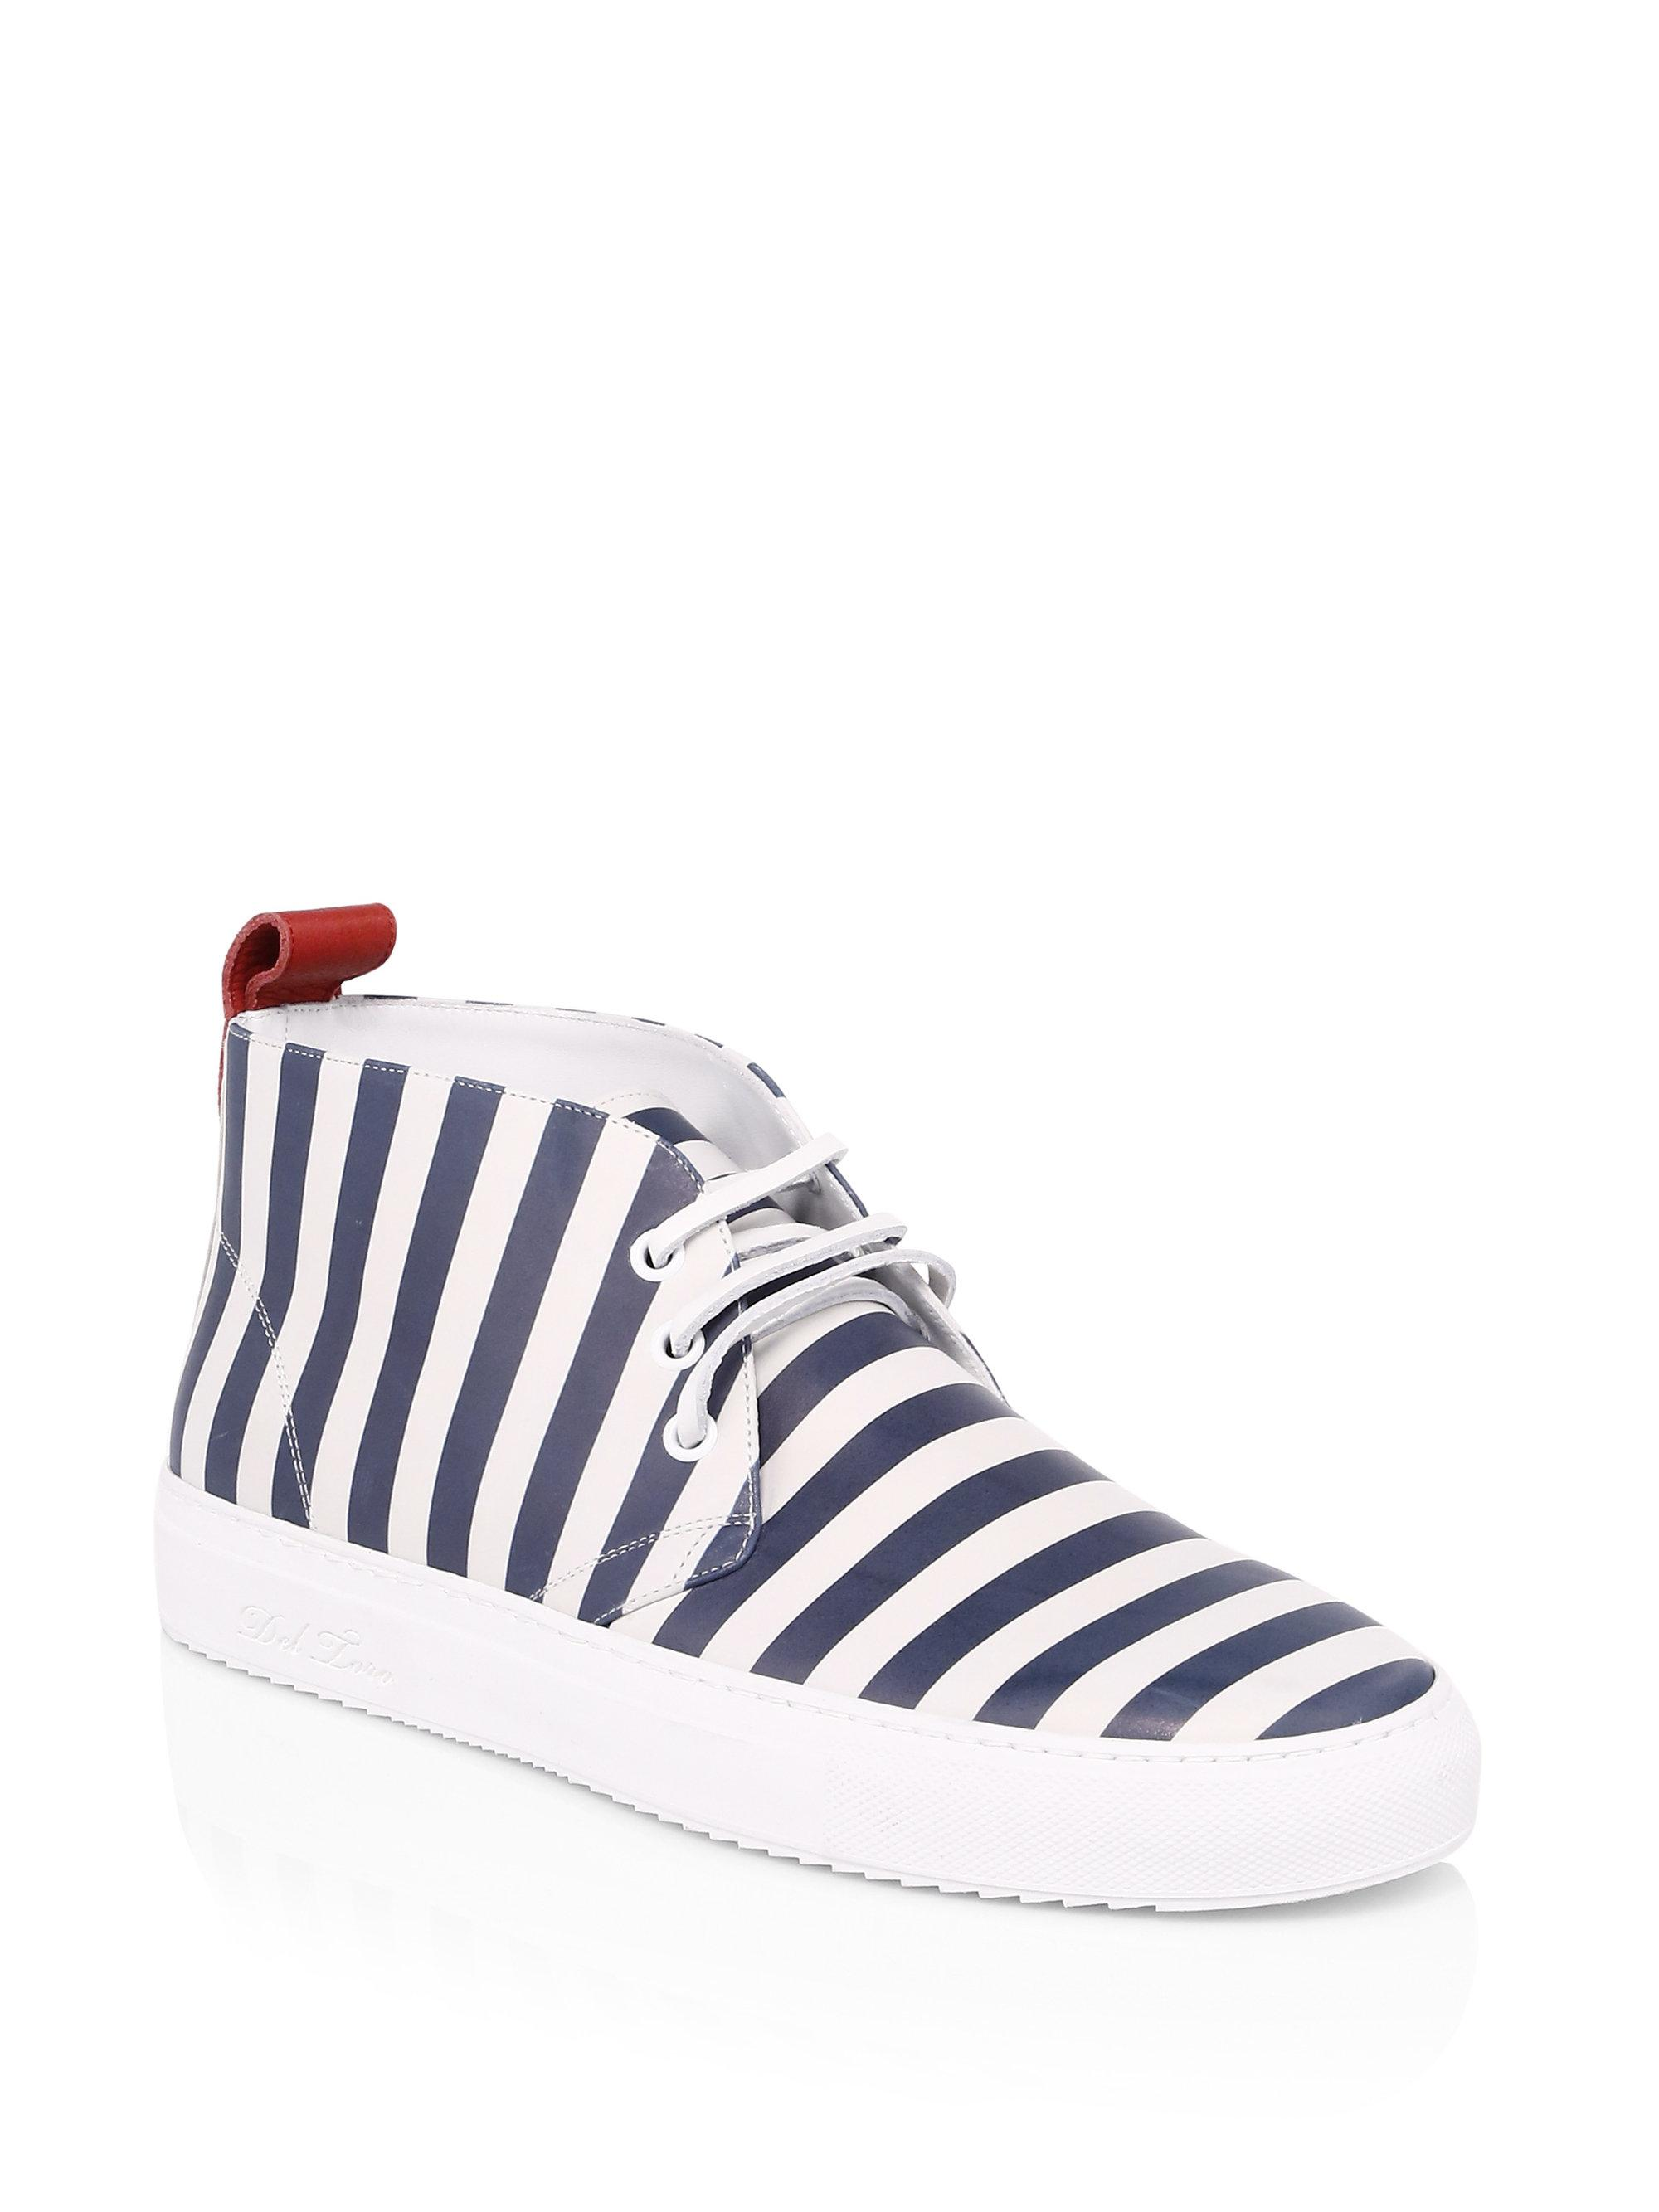 DEL TORO Striped Chukka Sneakers mOAmG